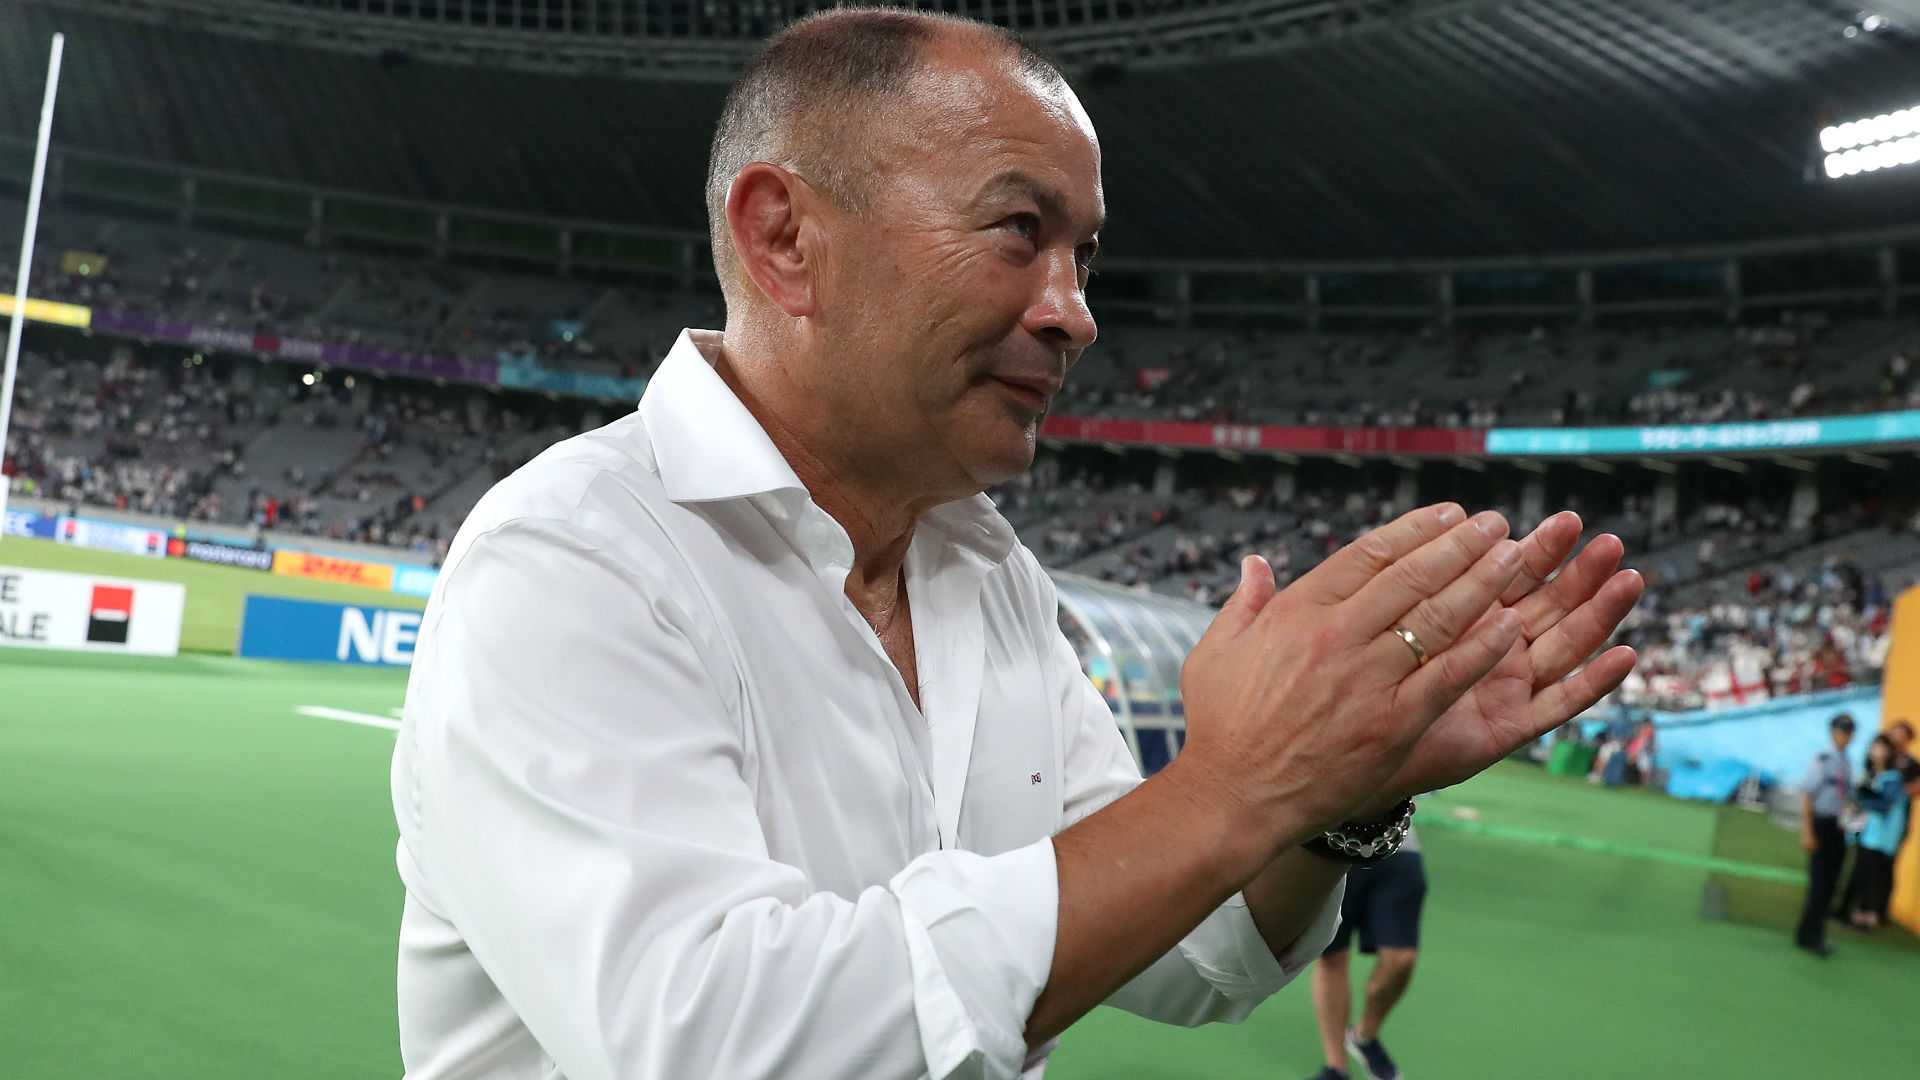 Rugby World Cup 2019: England right on track, says Jones after Argentina win